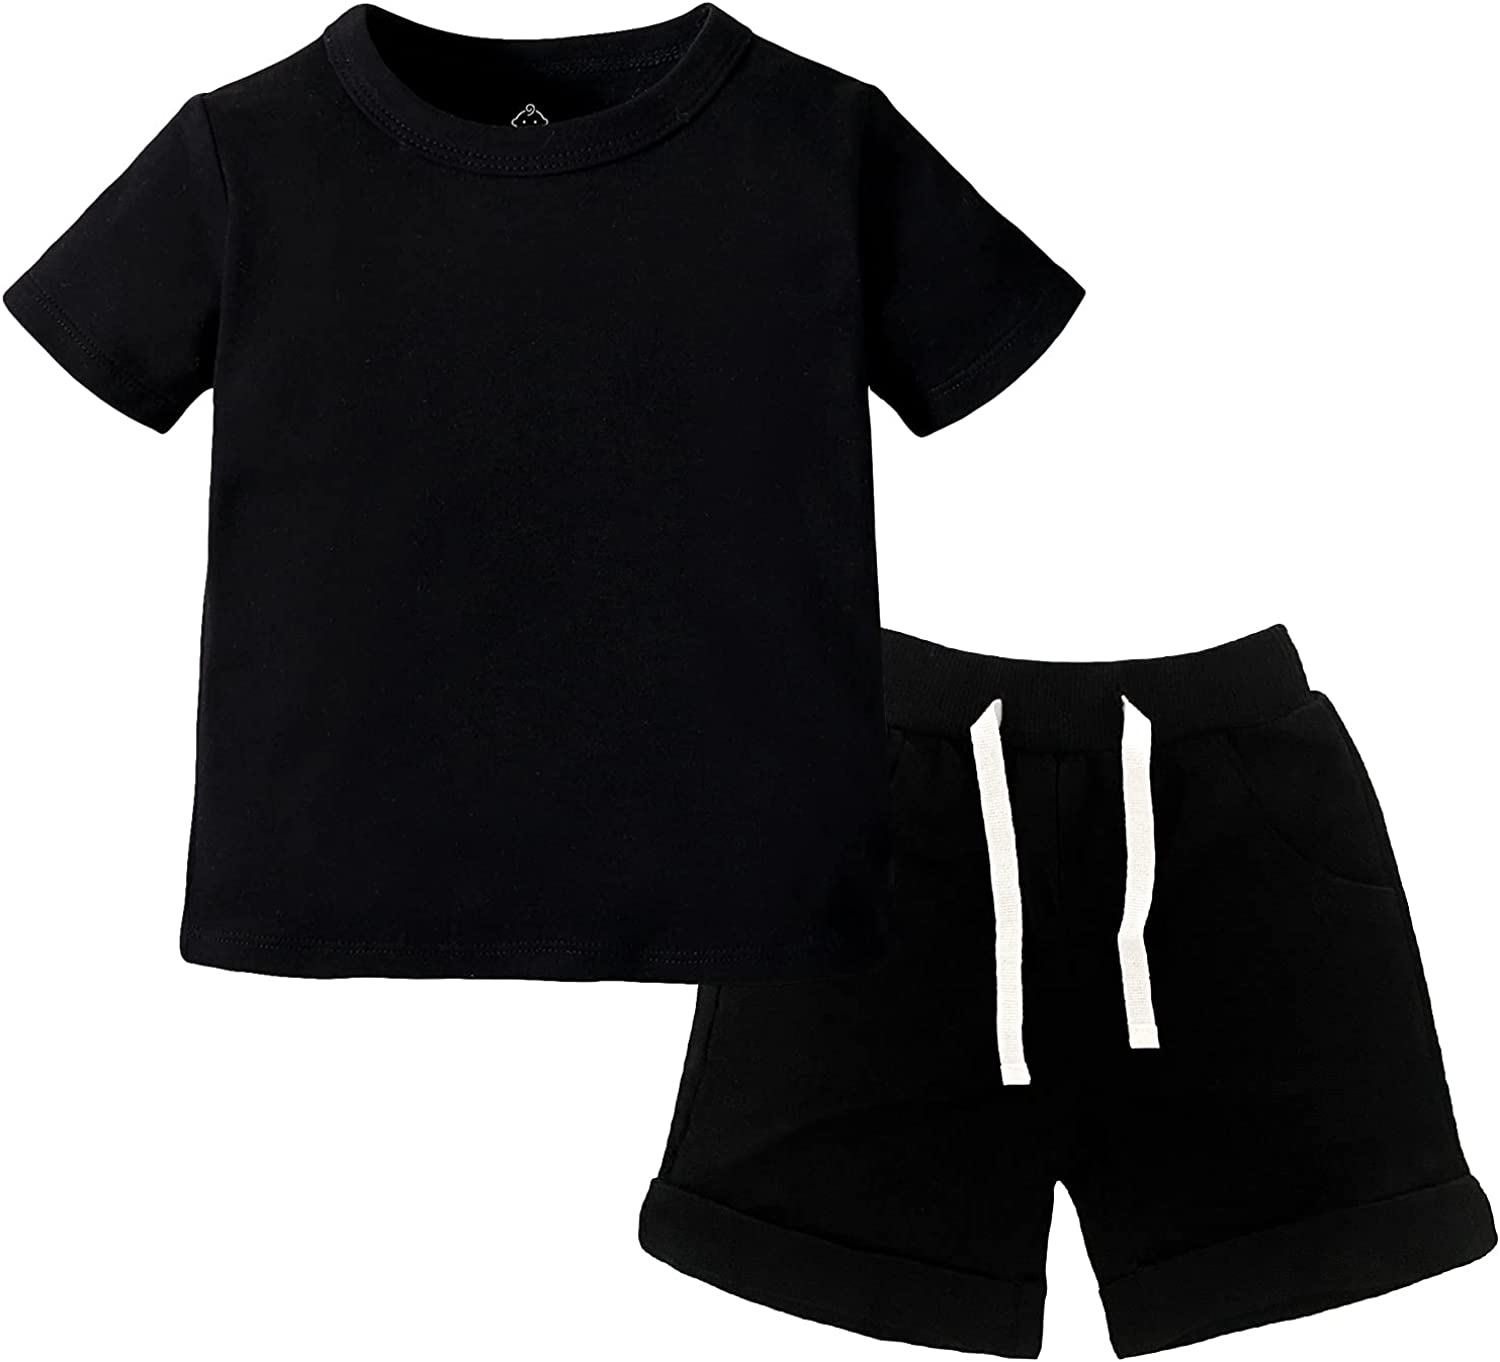 SOBOWO Baby Boys Girls Summer Sport T-Shirt and Shorts Set Solid Color Clothing Sets Tracksuit